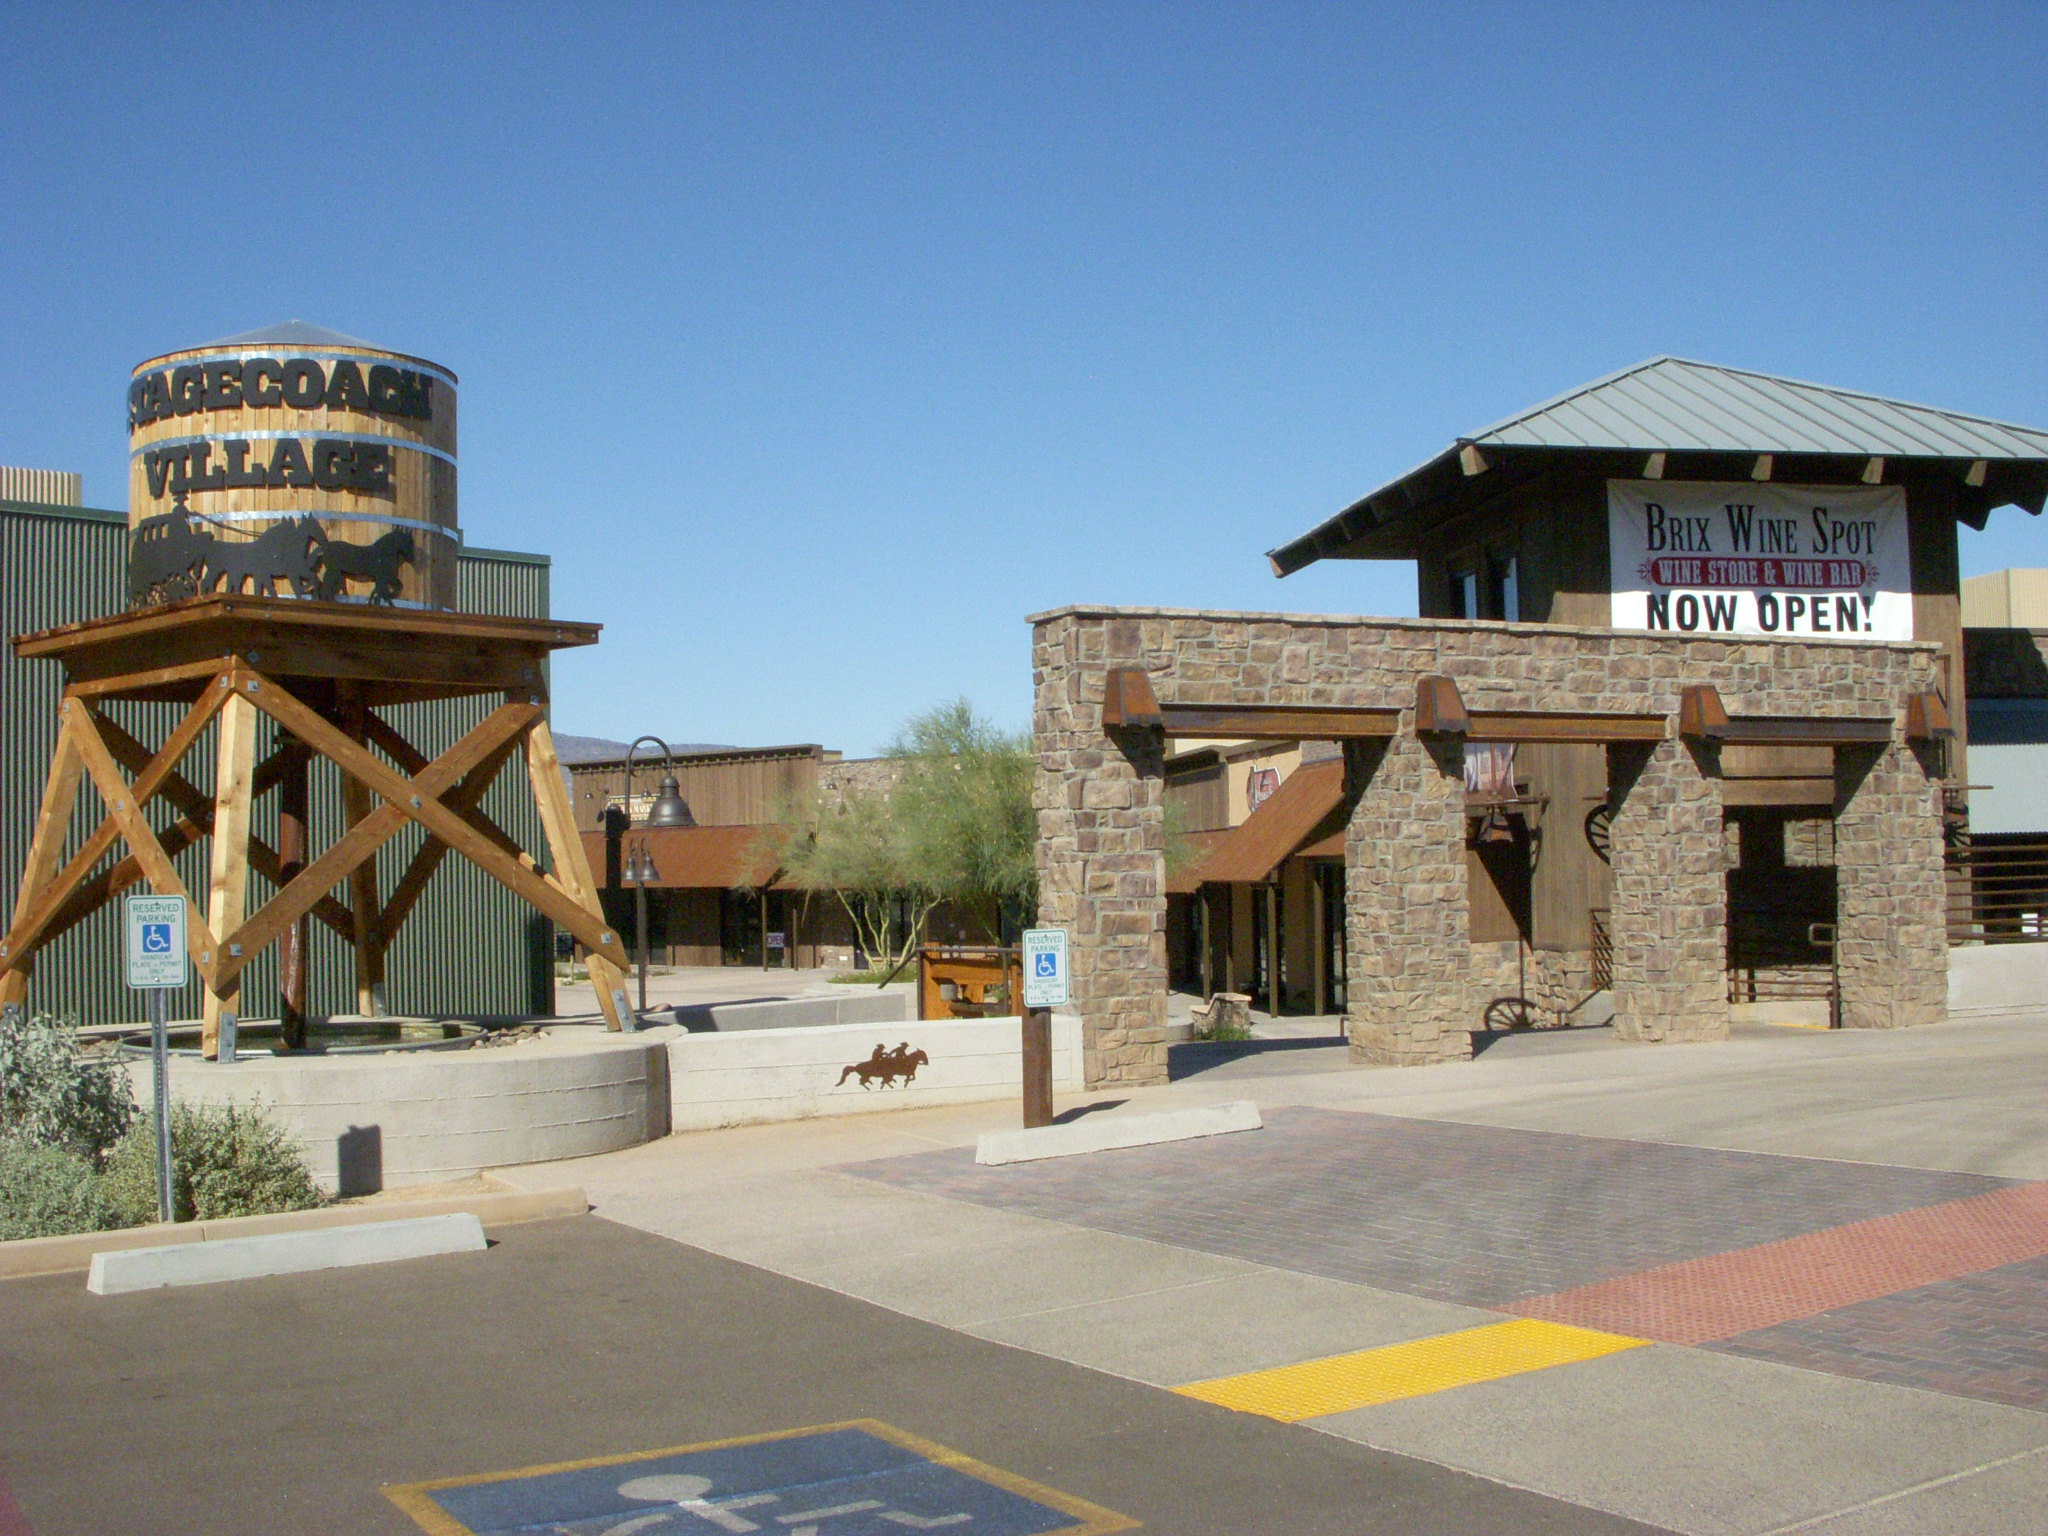 An outside view of the Stagecoach Village Shopping Center from the parking lot with a large wooden faux water tower with a stagecoach silhouette decoration.